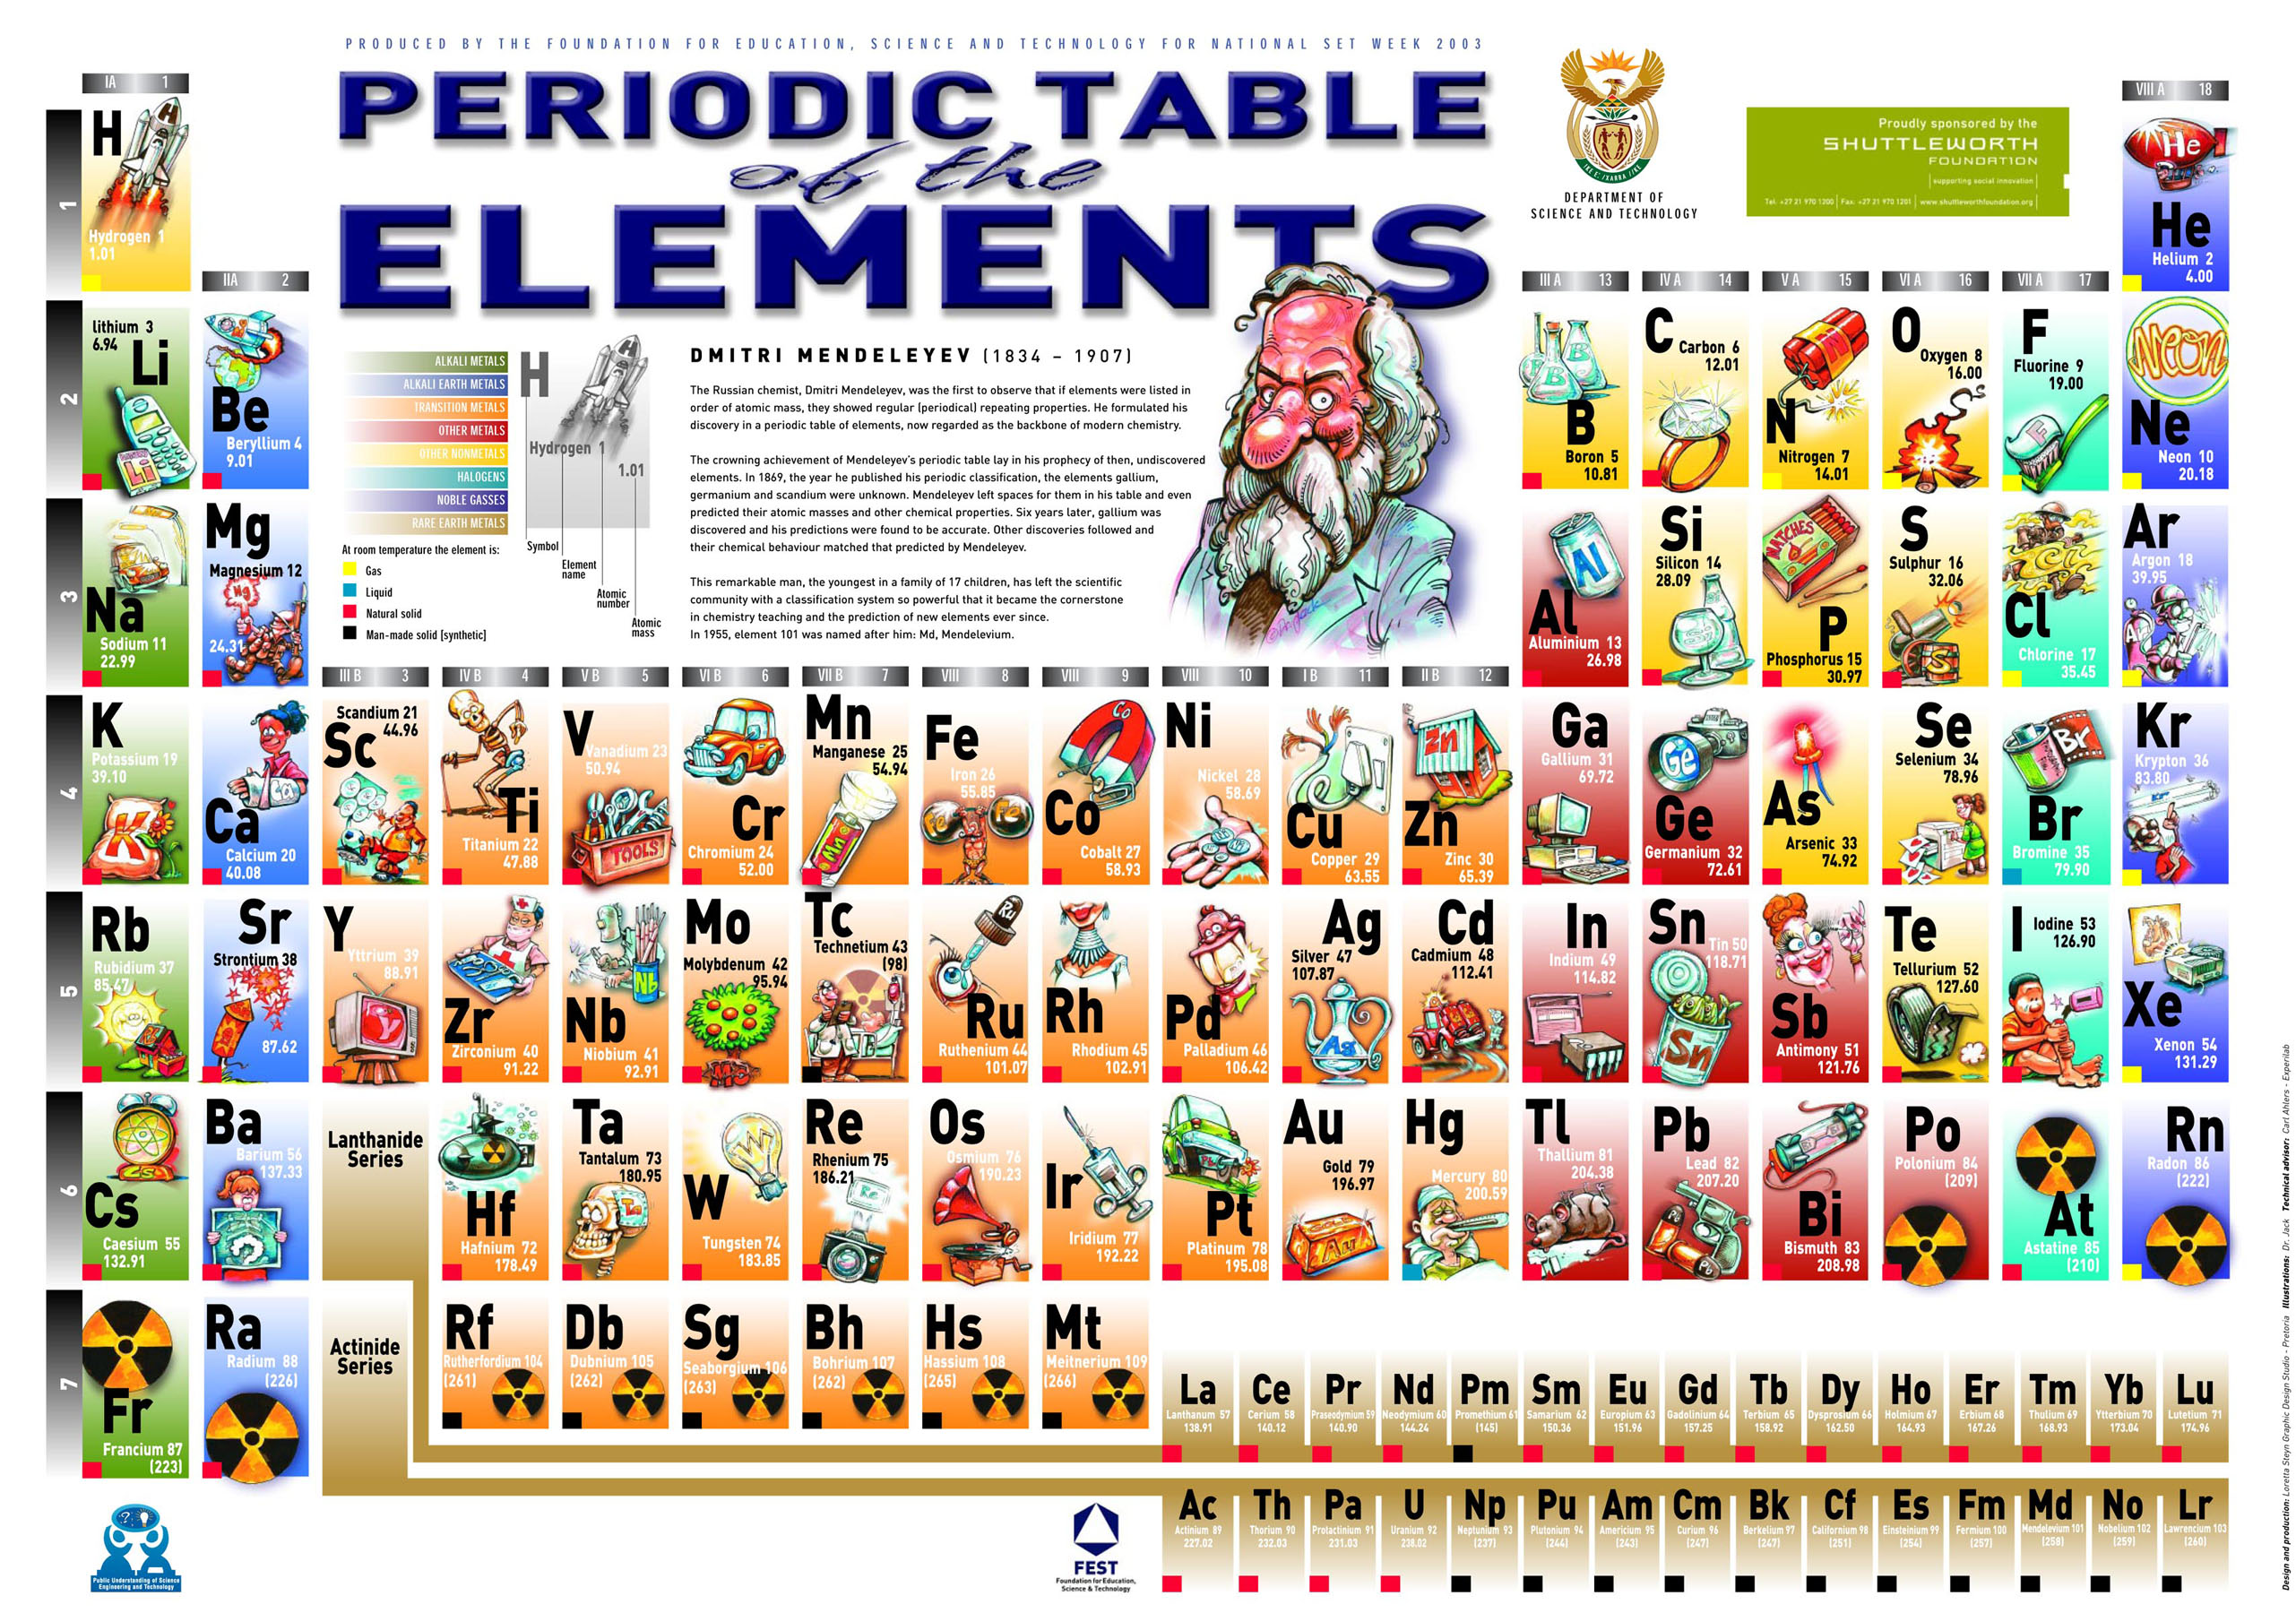 Periodic Table of Elements Large Poster Educational A1 A2 A3 A4 A5 Poster 8